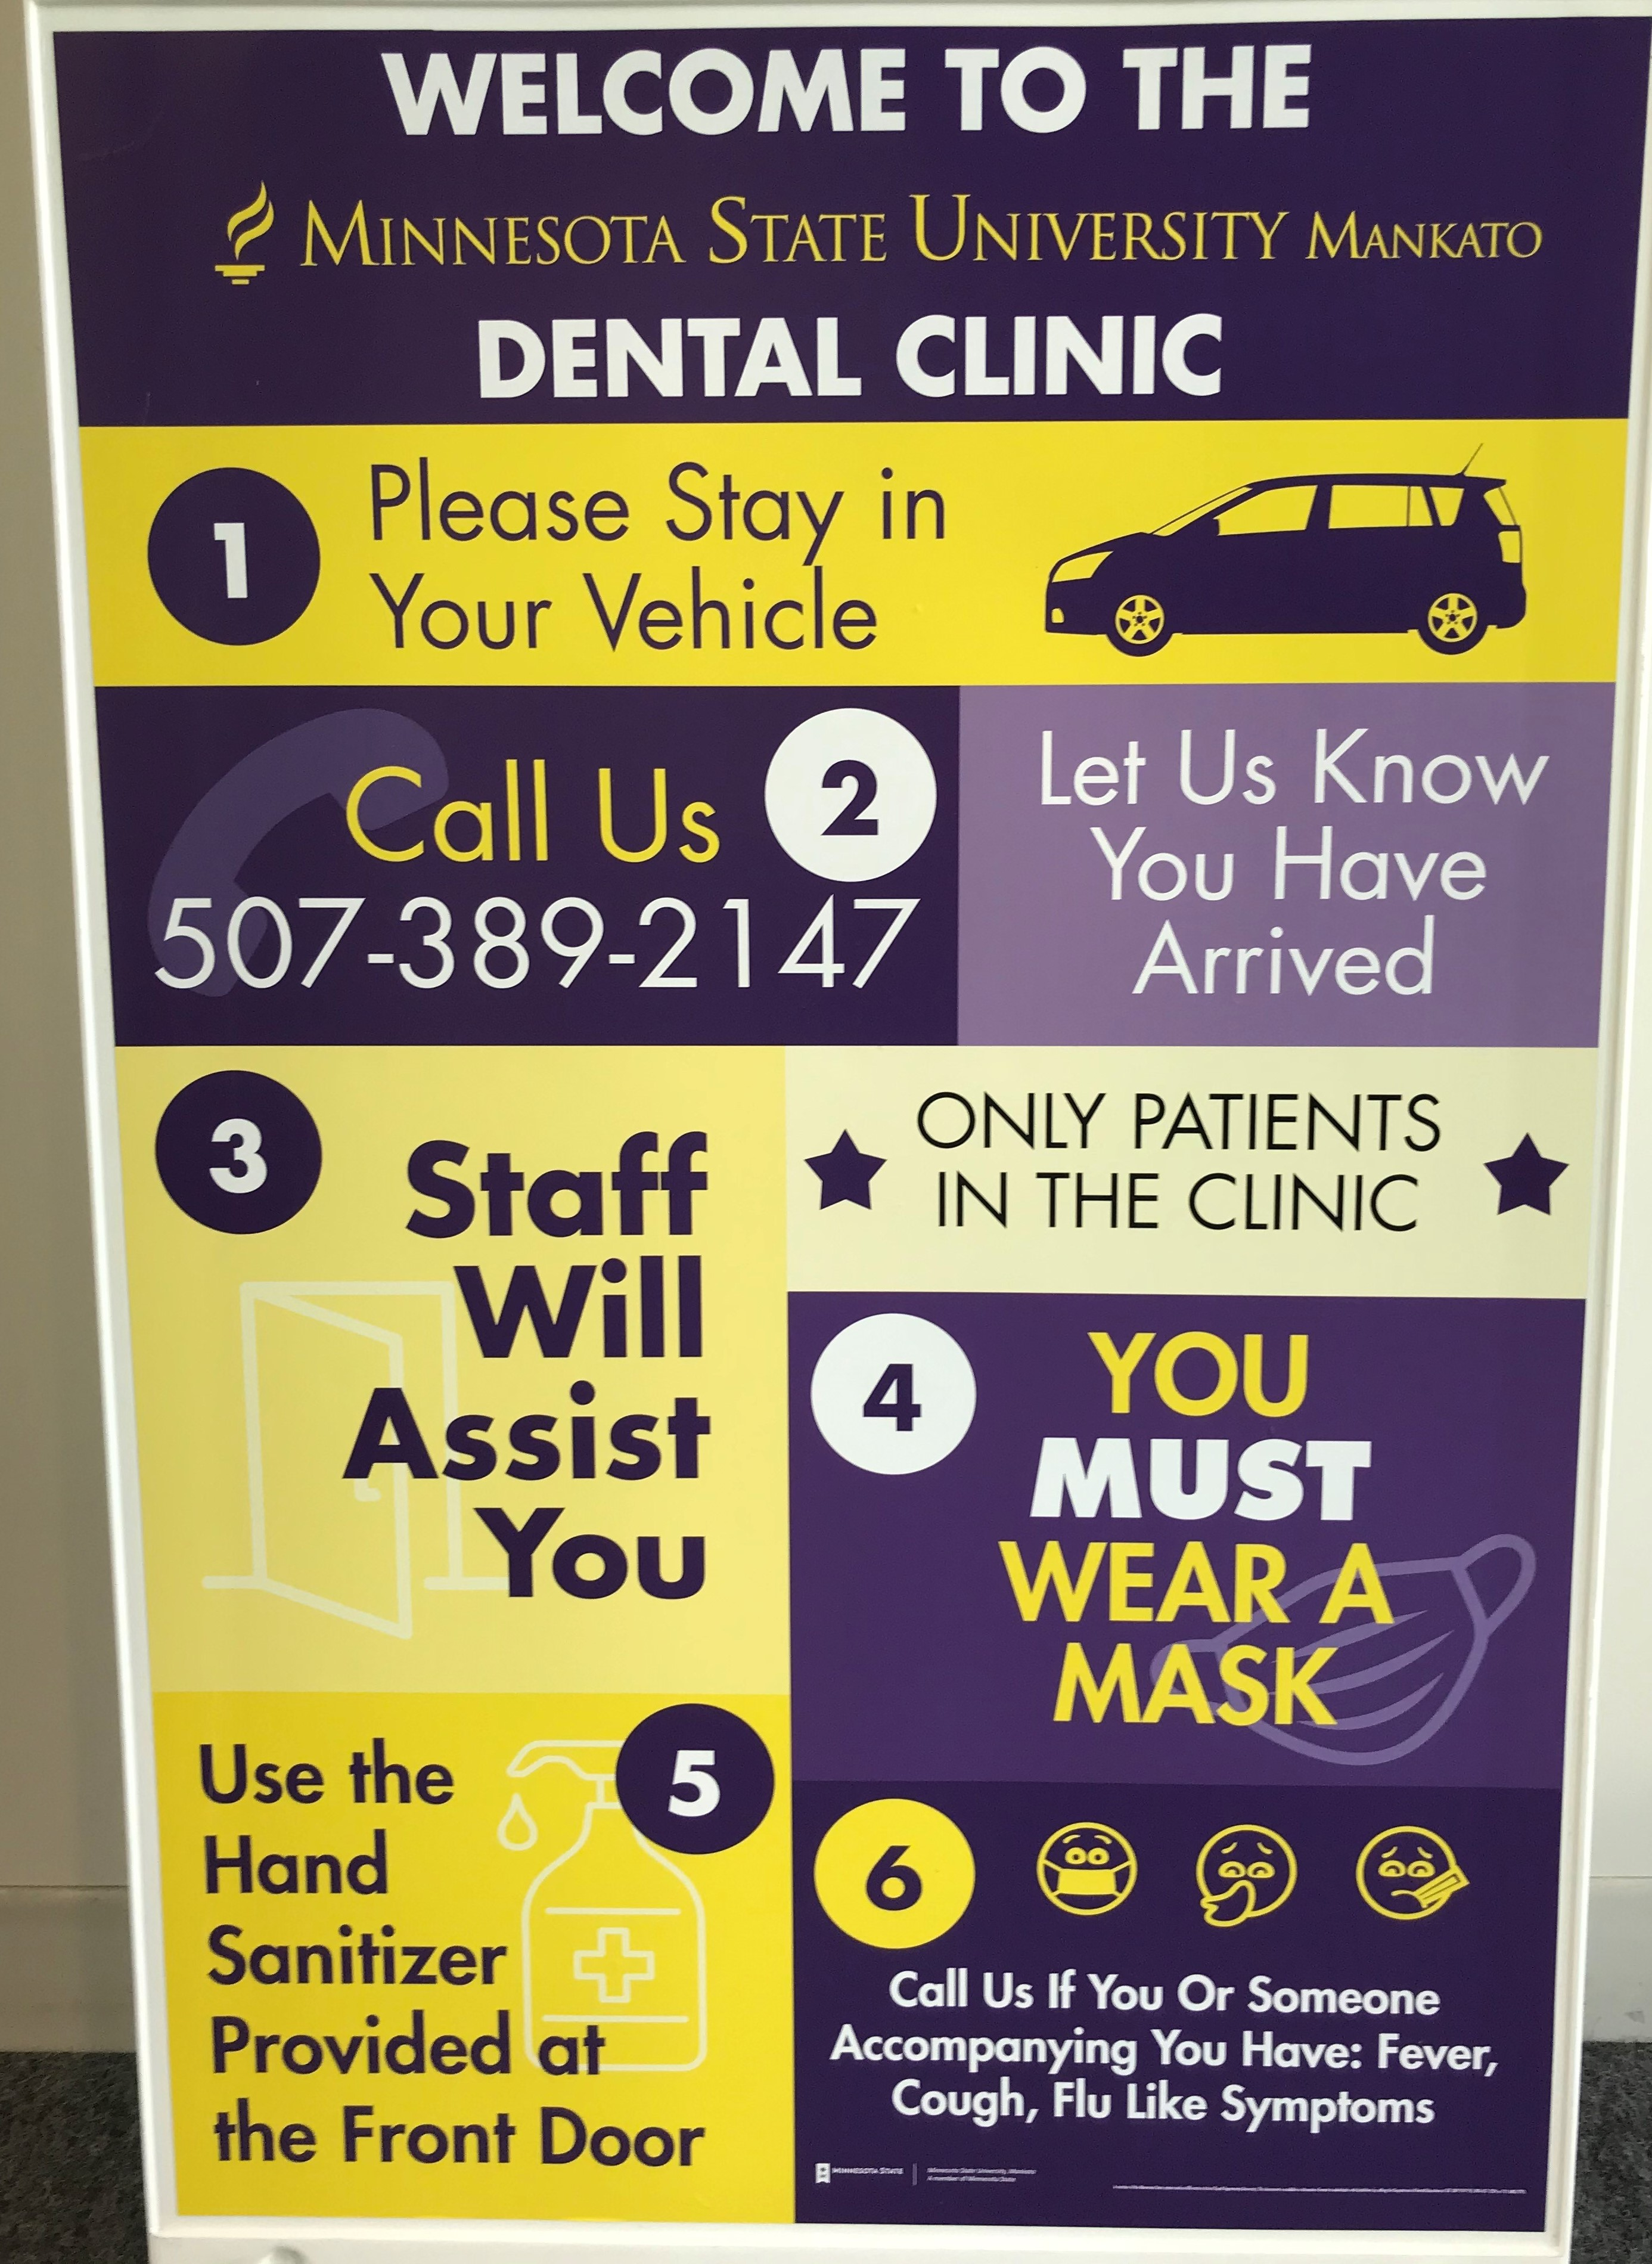 Sign with directions for arriving at dental clinic